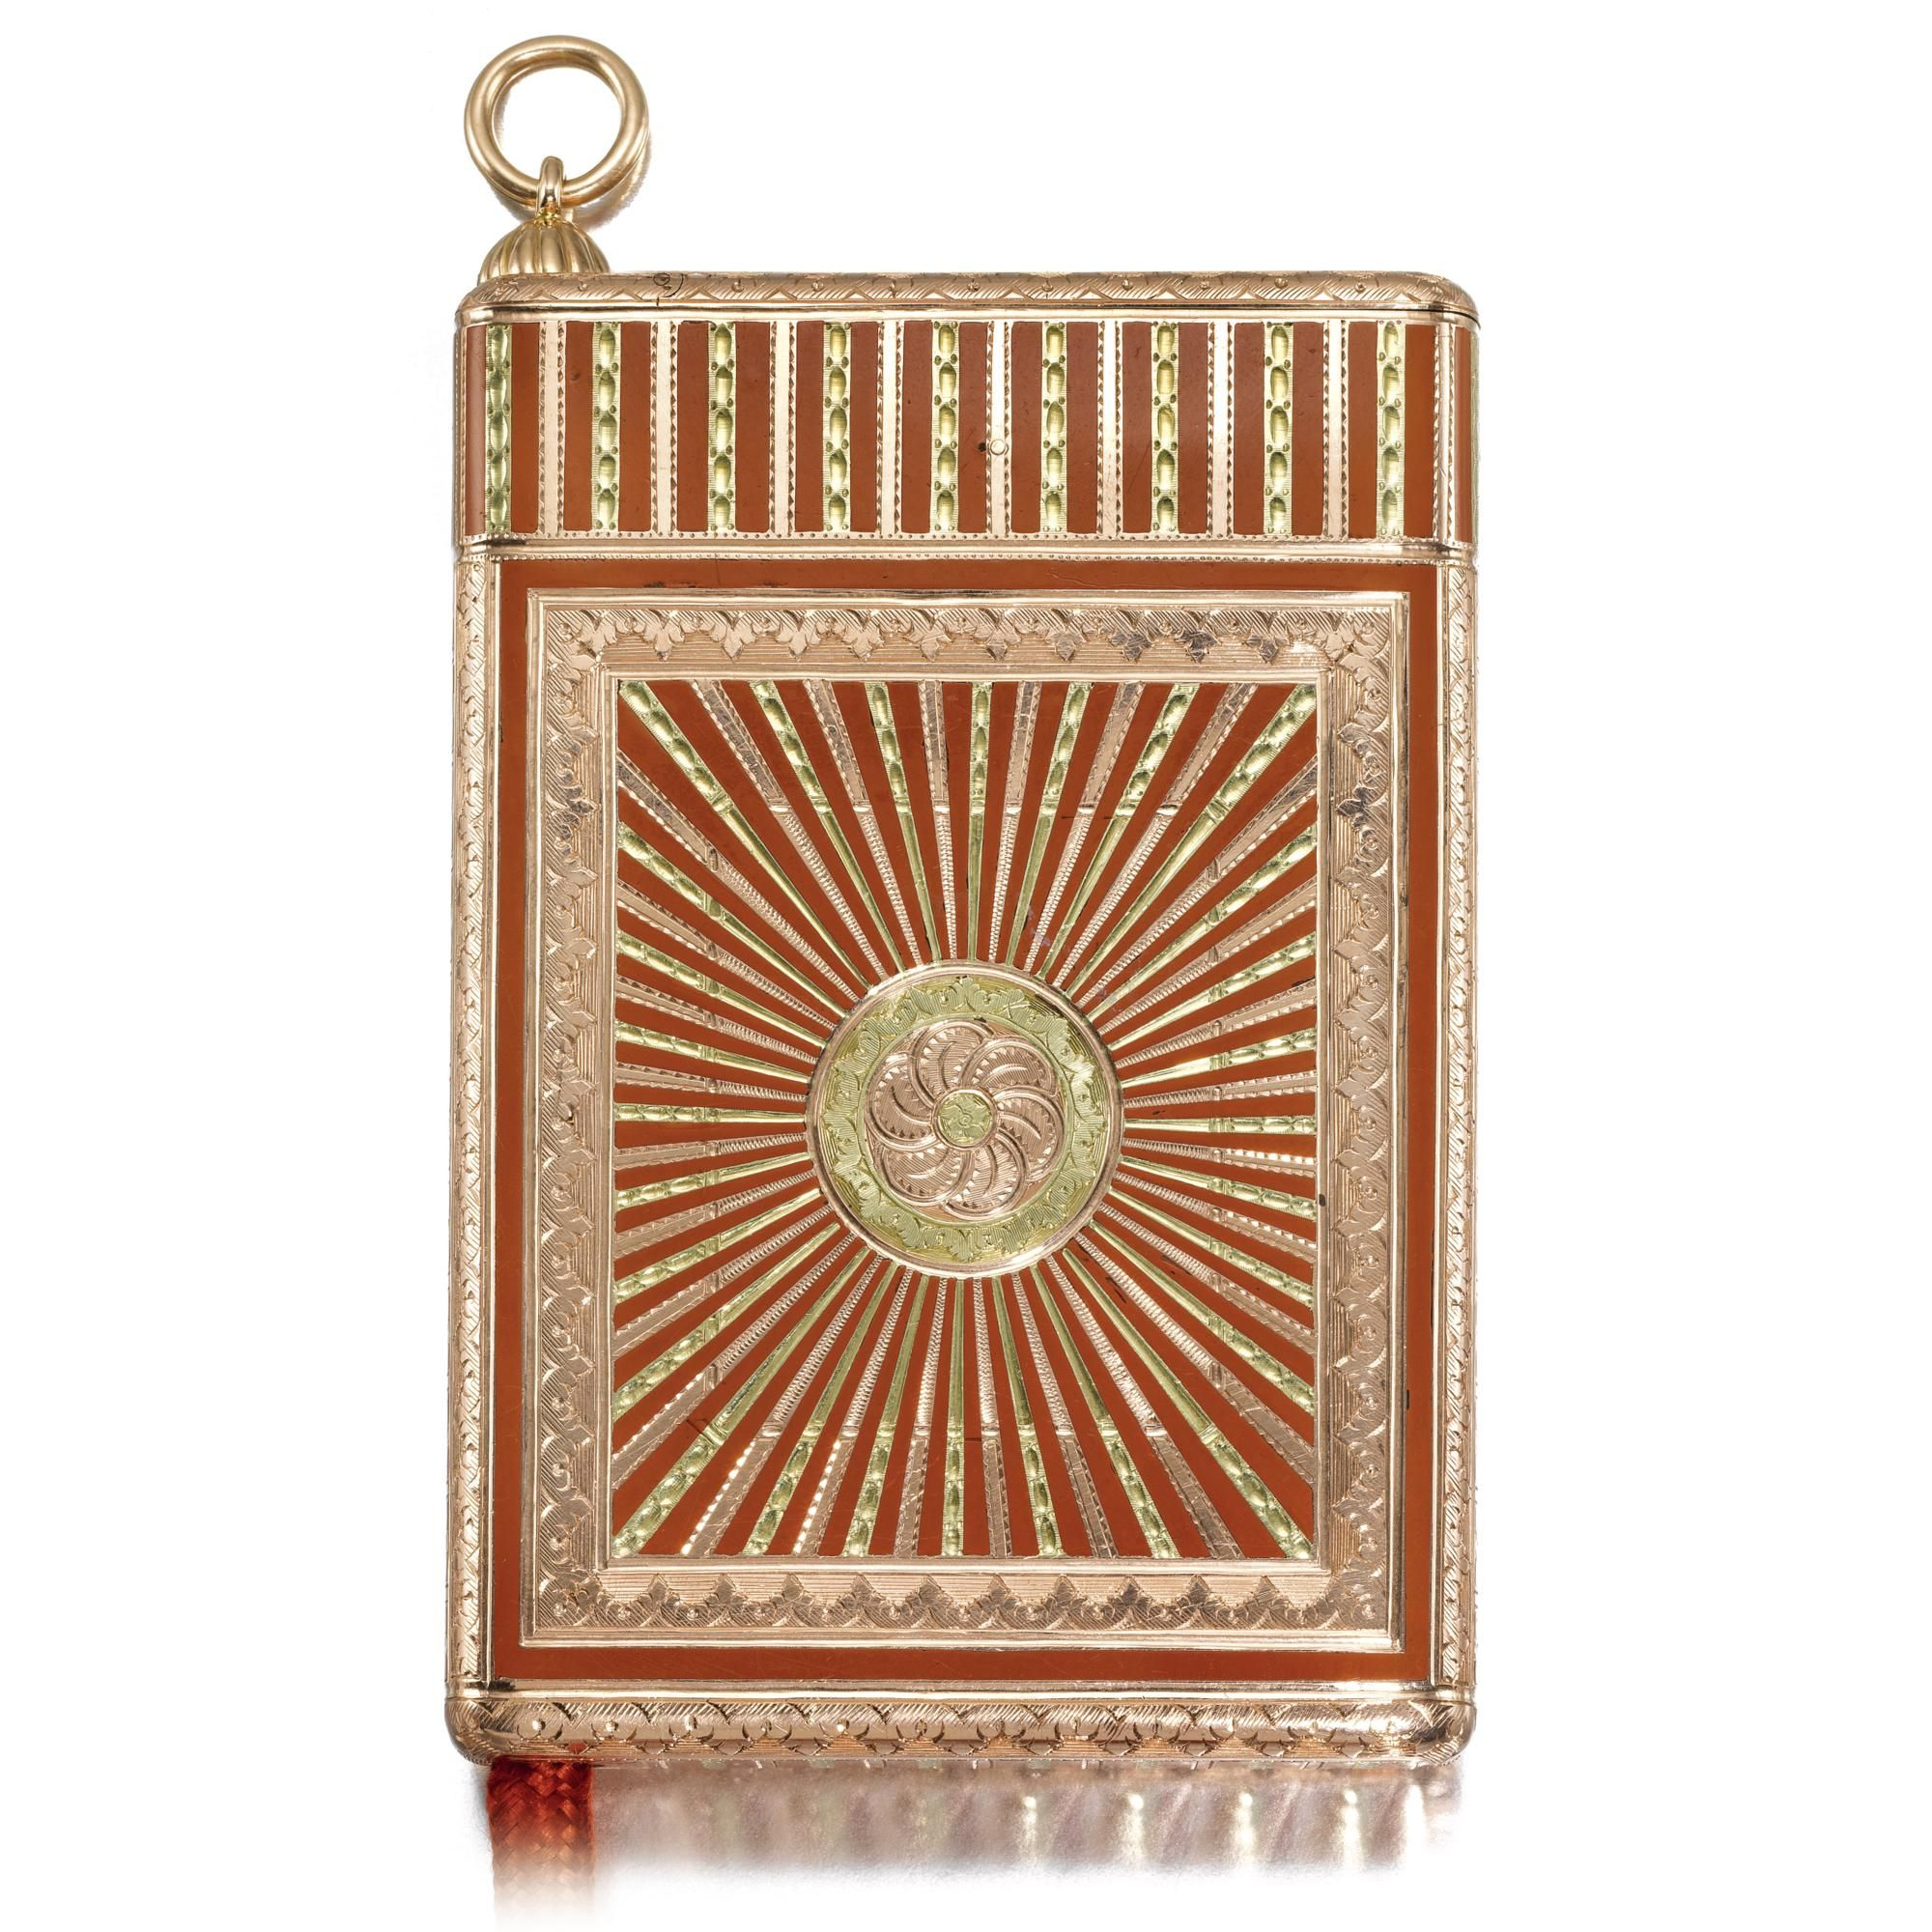 A RARE FABERGÉ LACQUERED TWO-COLOUR GOLD CIGARETTE CASE, WORKMASTER MICHAEL PERCHIN, ST PETERSBURG, CIRCA 1895 the surface of cinnabar lacquer within vari-coloured gold stripes and rays, the lid and base centred with a rosette within acanthus tip borders, the end with vesta compartment containing vestas, red tinder cord, struck with workmaster's initals, 56 standard